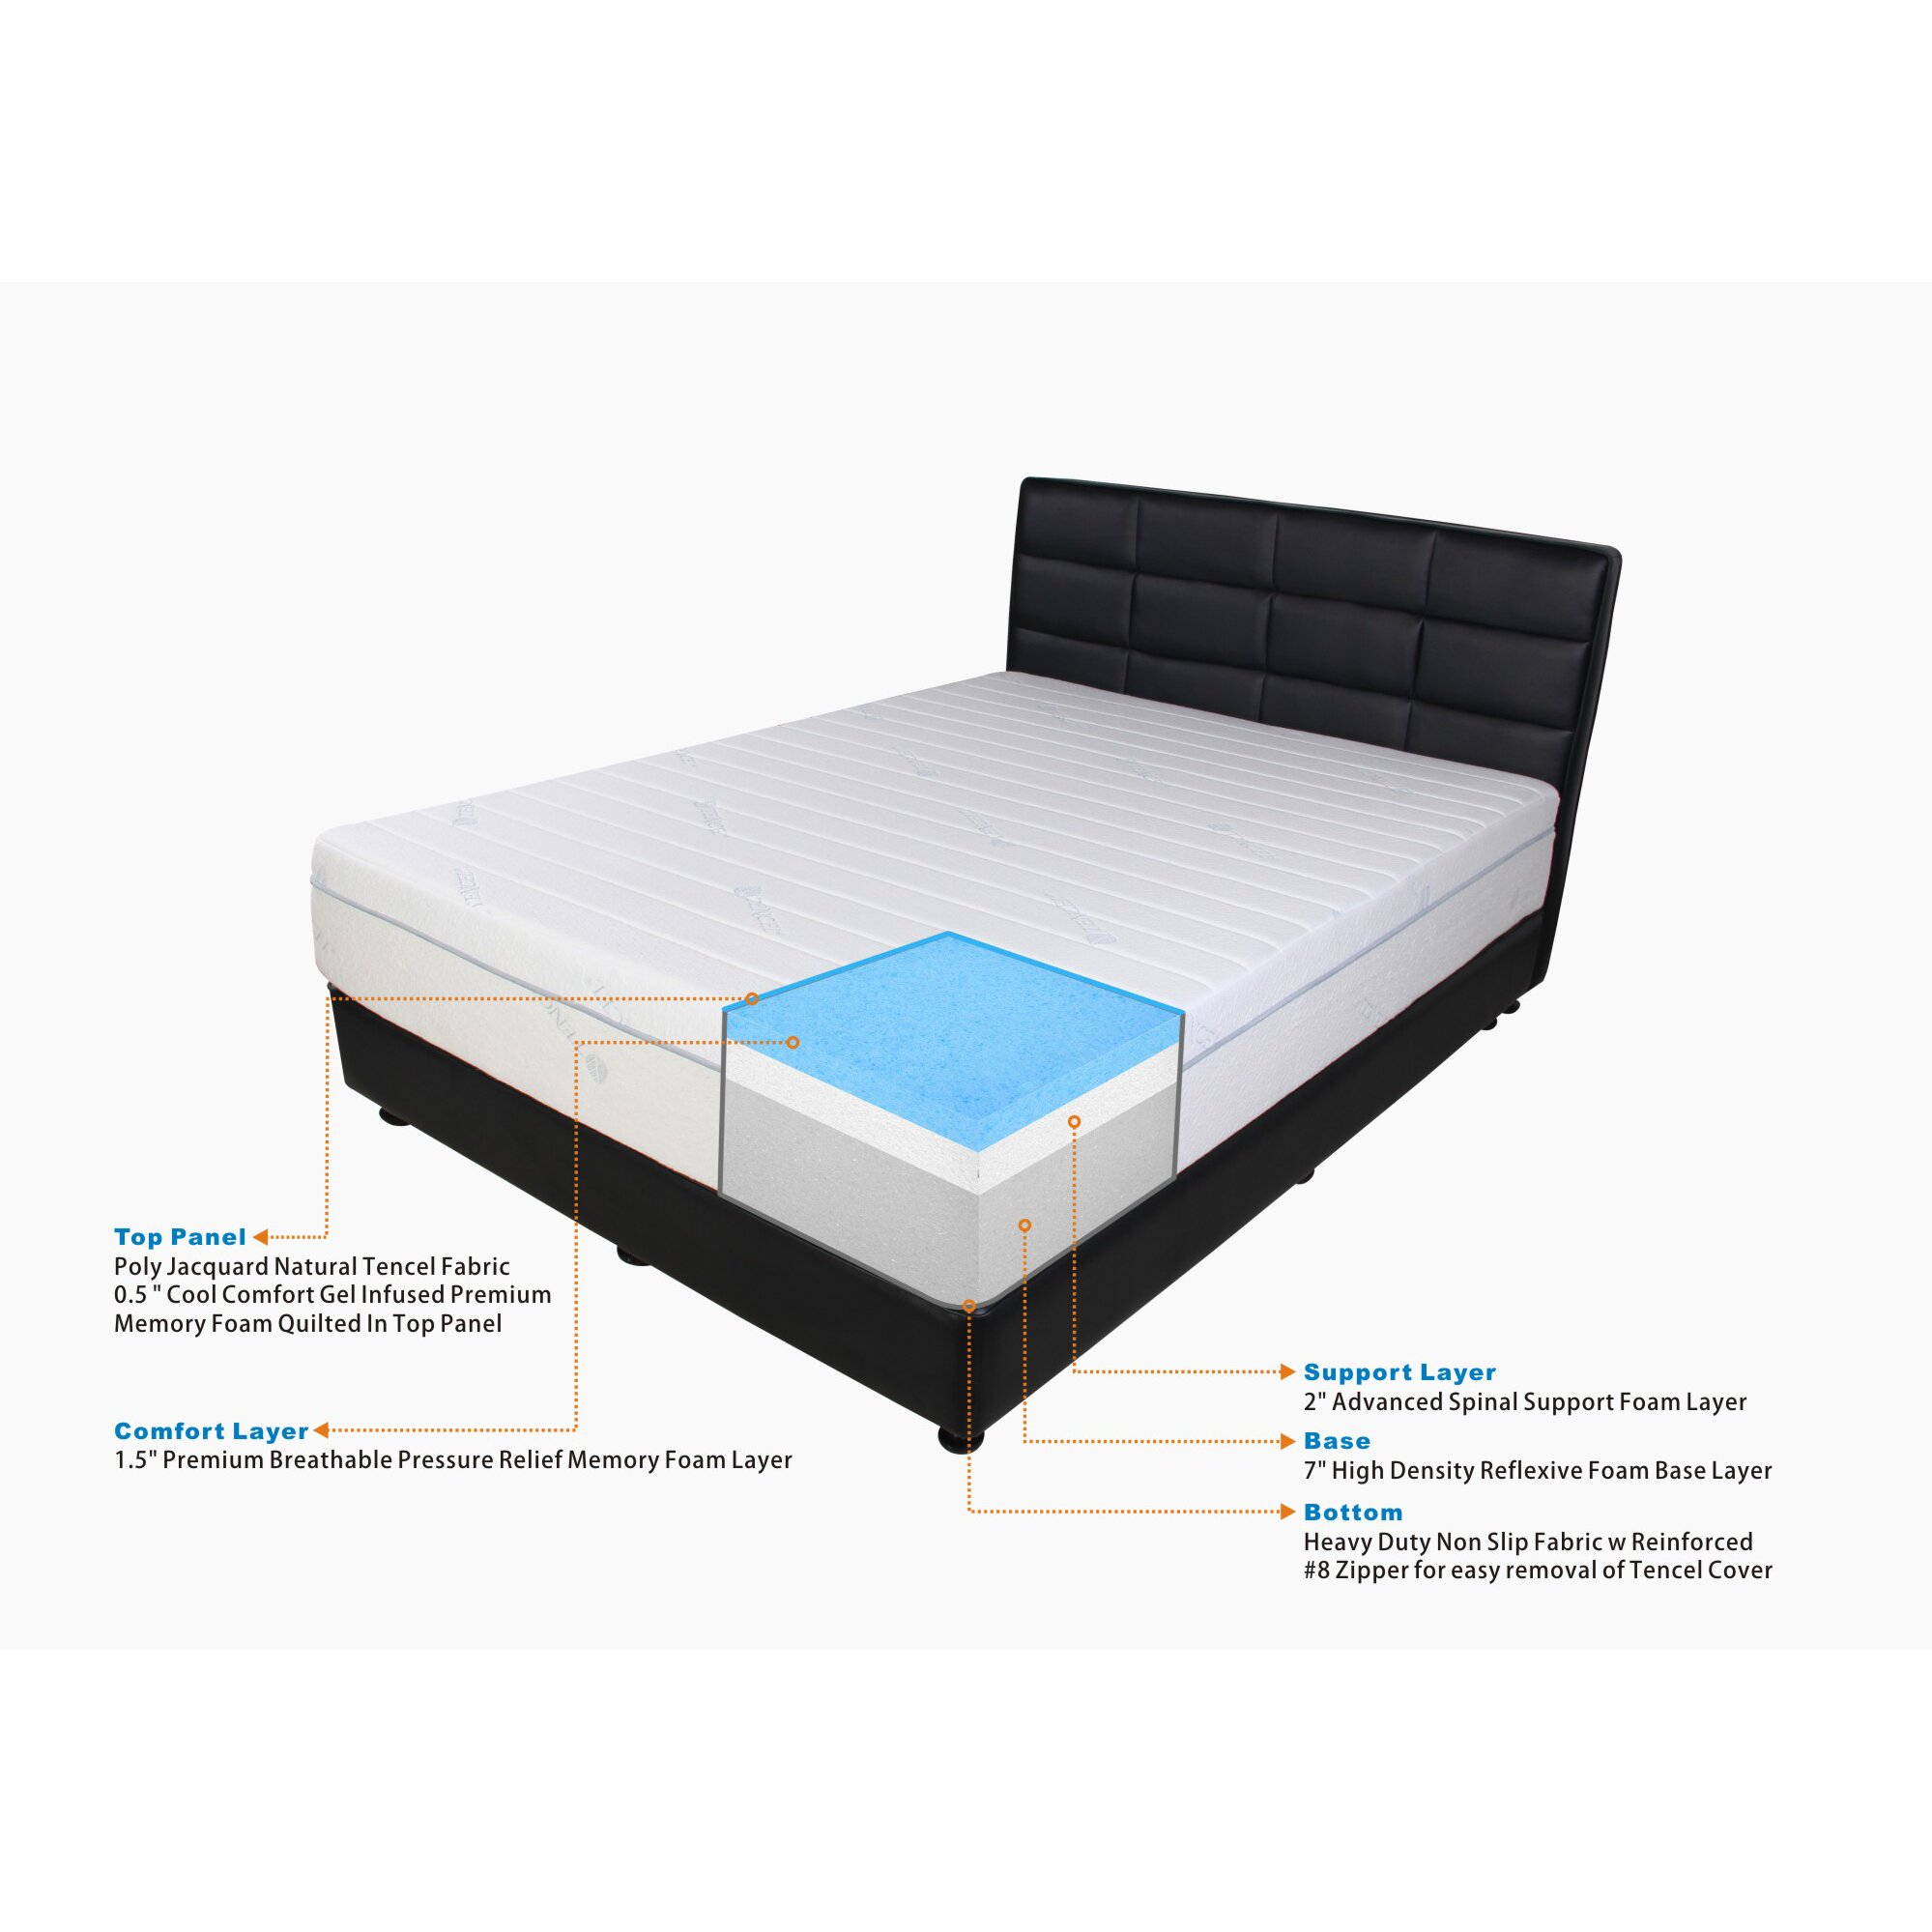 Designed To Sleep 11 Gel Memory Foam Mattress Reviews Wayfair